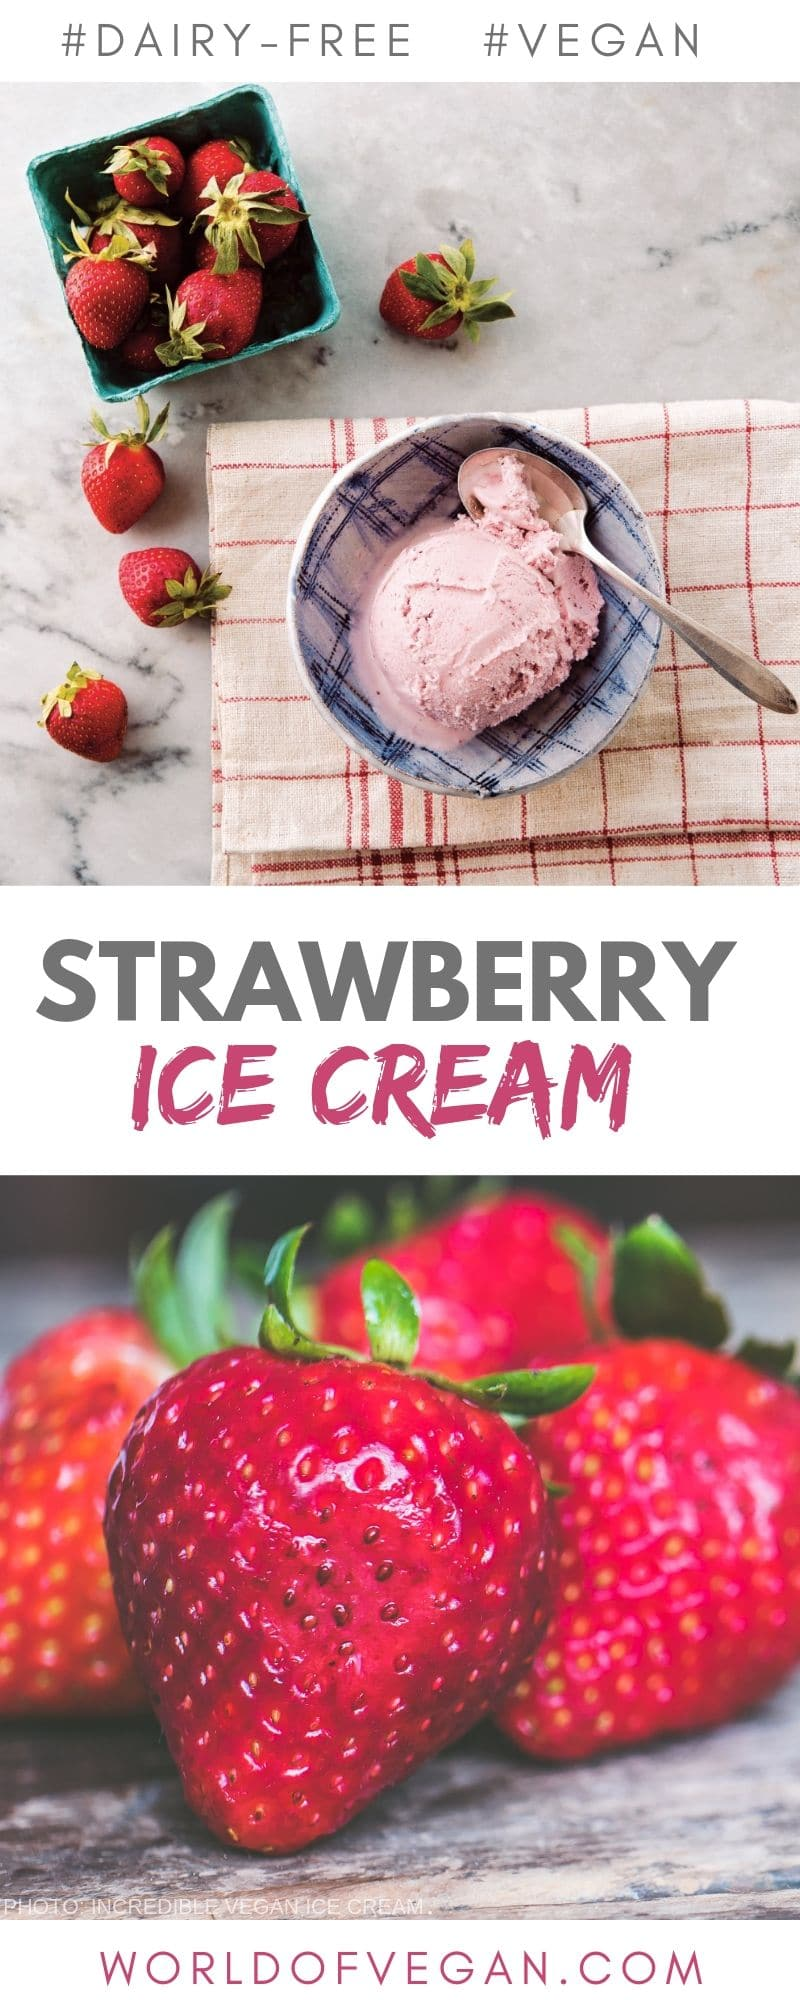 Fresh Vegan Strawberry Ice Cream Recipe | World of Vegan | #strawberry #icecream #vegan #homemade #treat #dessert #worldofvegan